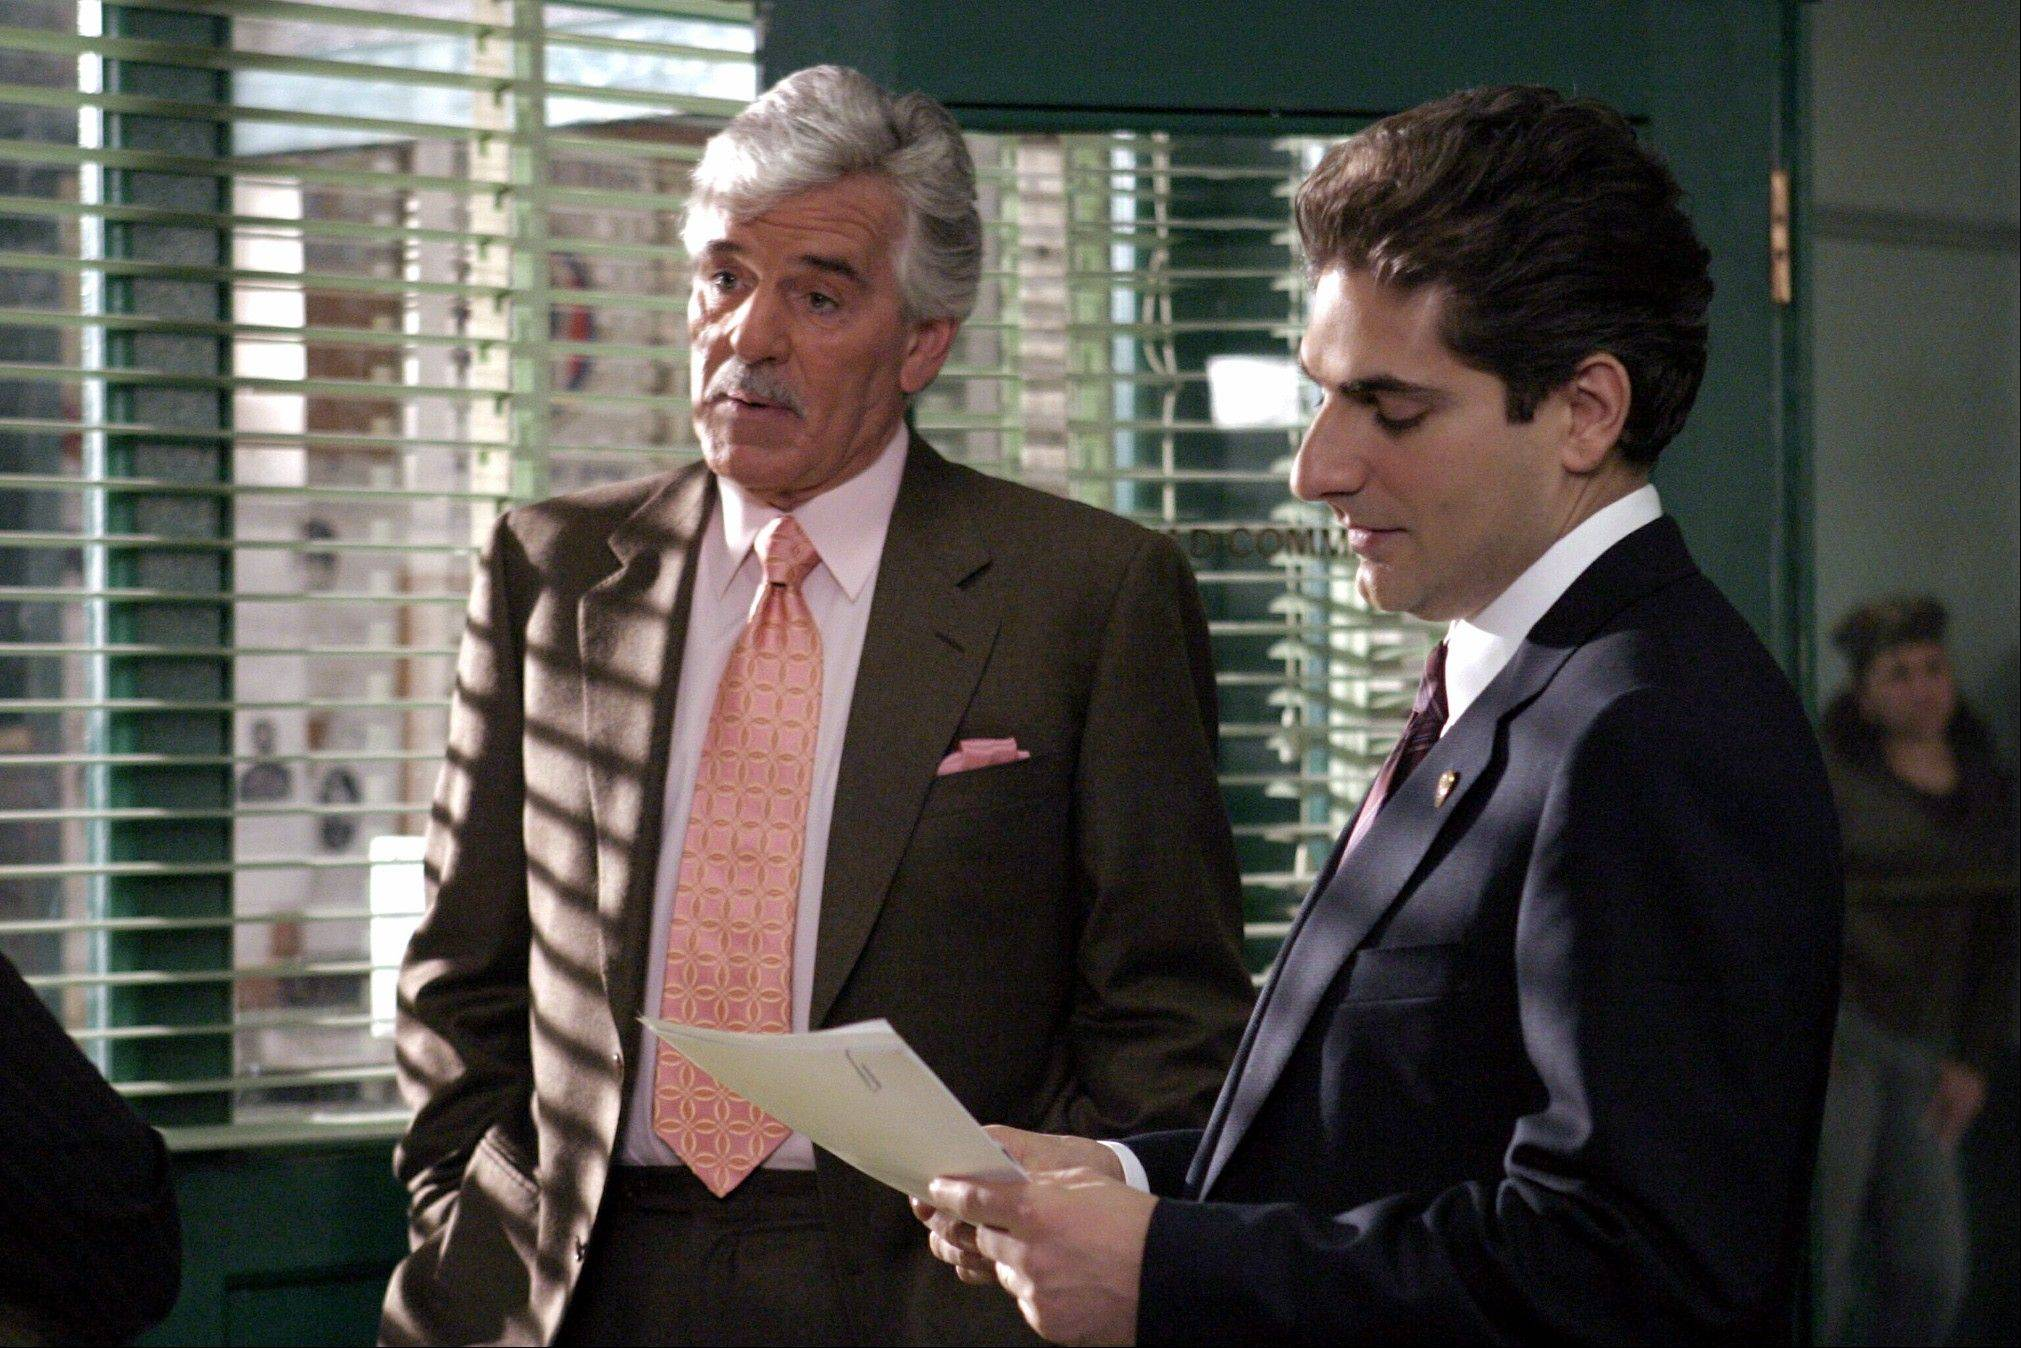 "Dennis Farina, who plays New York Police Detective Joe Fontana, acts in a scene with Michael Imperioli as Detective Nick Falco, in an episode from NBC's police drama,""Law & Order."" Farina died suddenly Monday in Scottsdale, Ariz., after suffering a blood clot in his lung. He was 69."